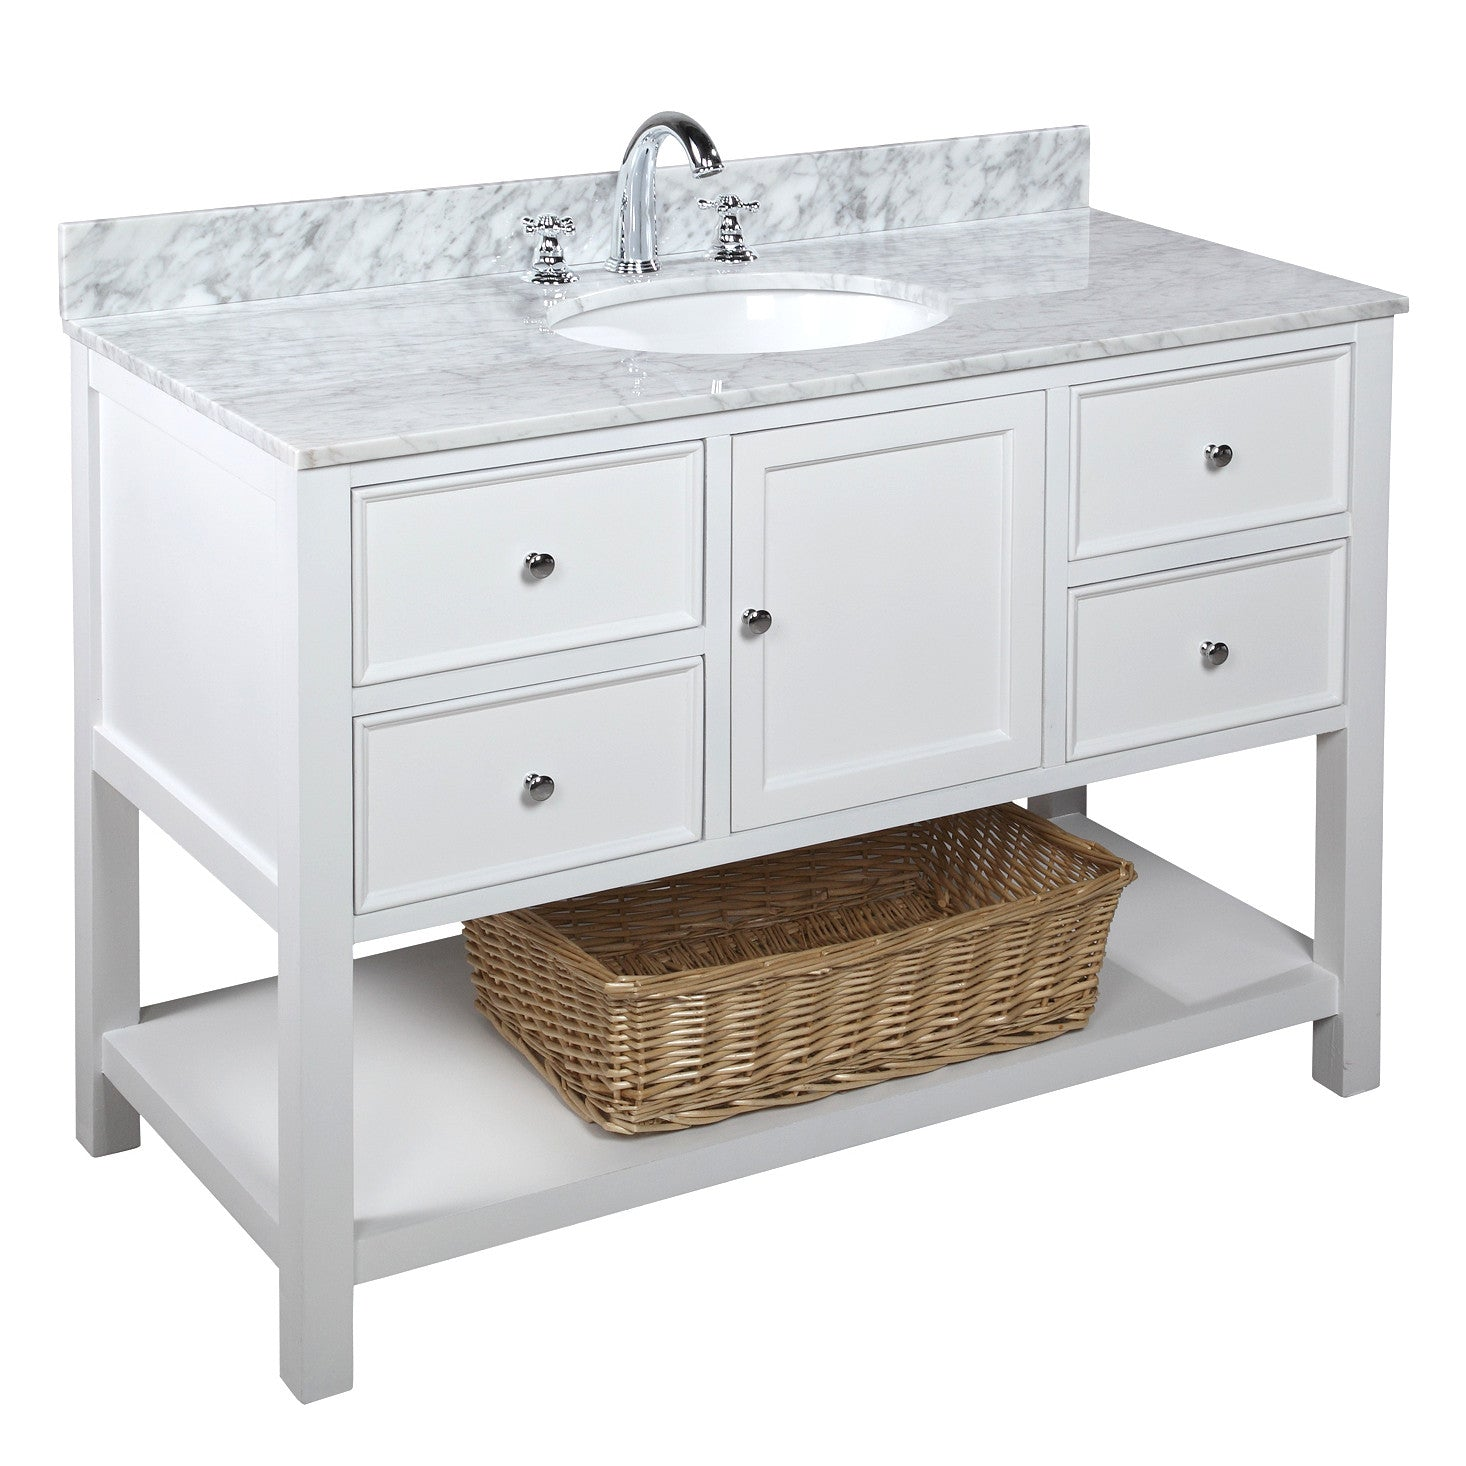 New Yorker 48-inch Vanity (Carrara/White)